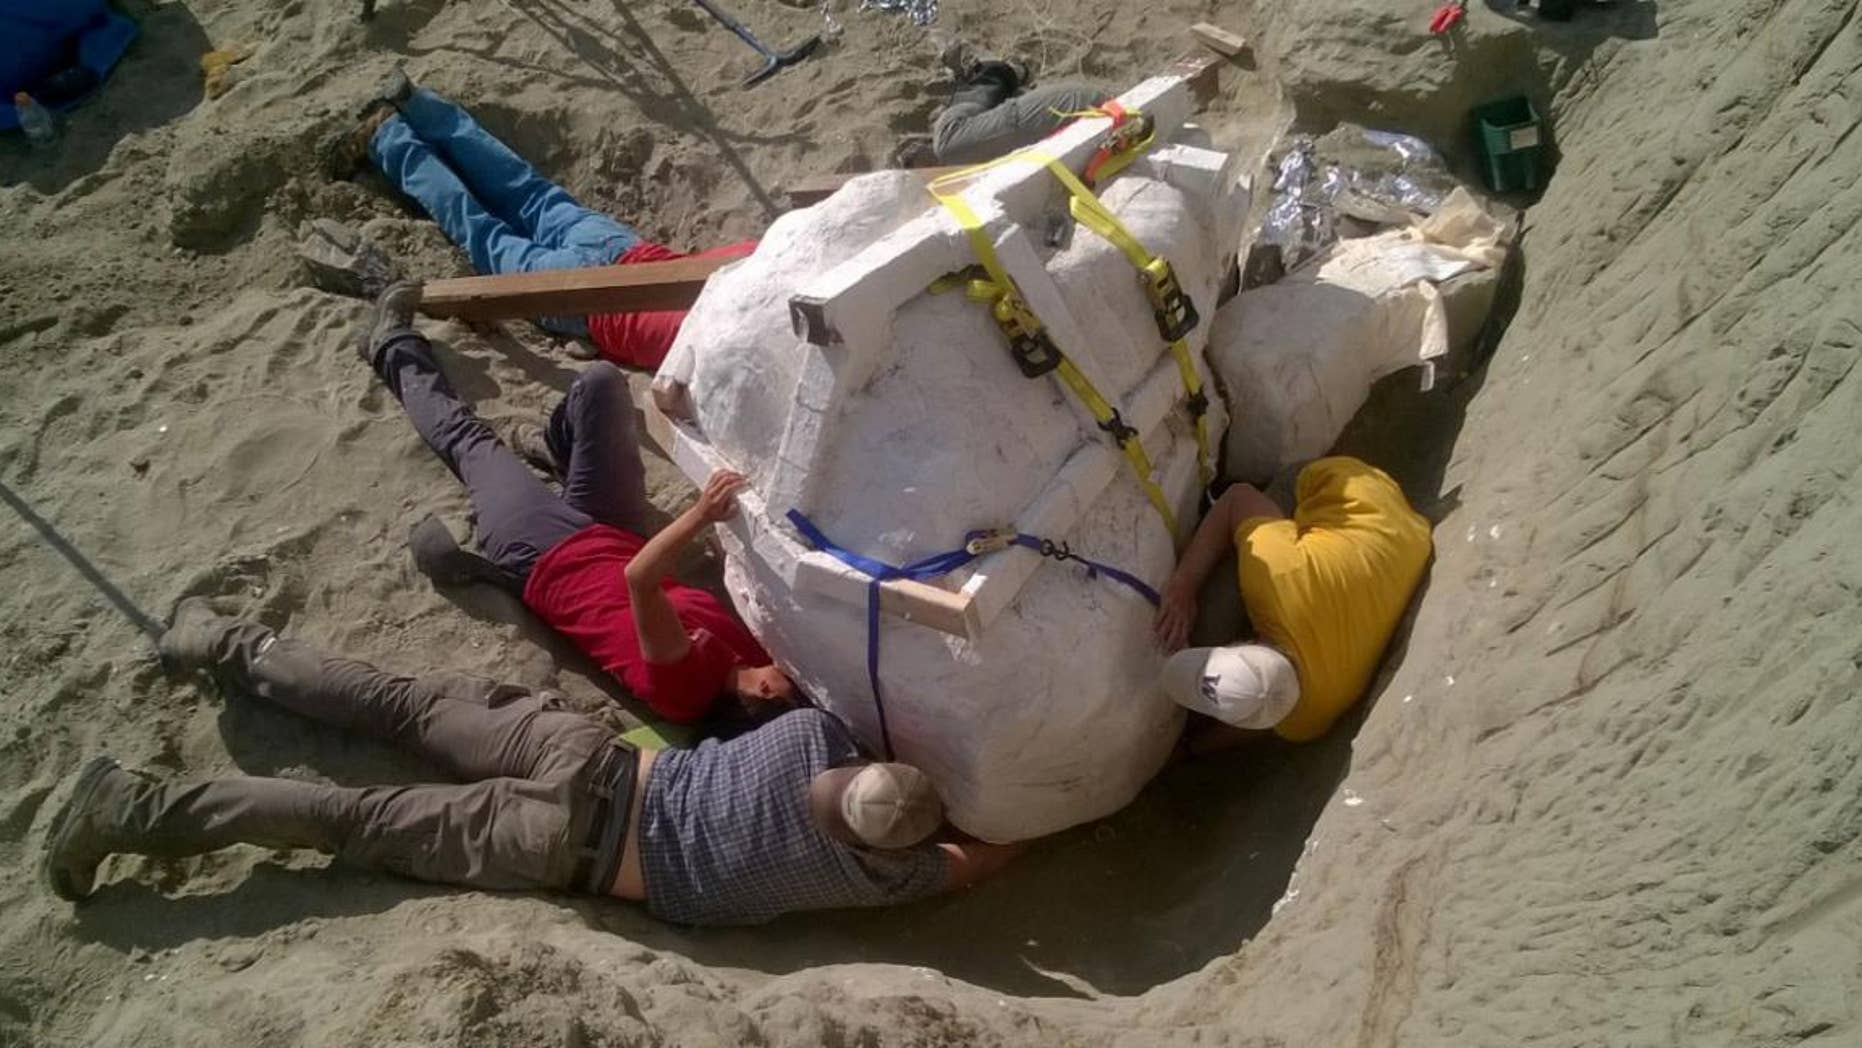 Paleontologists prepare to remove the T. rex skull from the dig site in northern Montana and transport it to the Burke Museum.